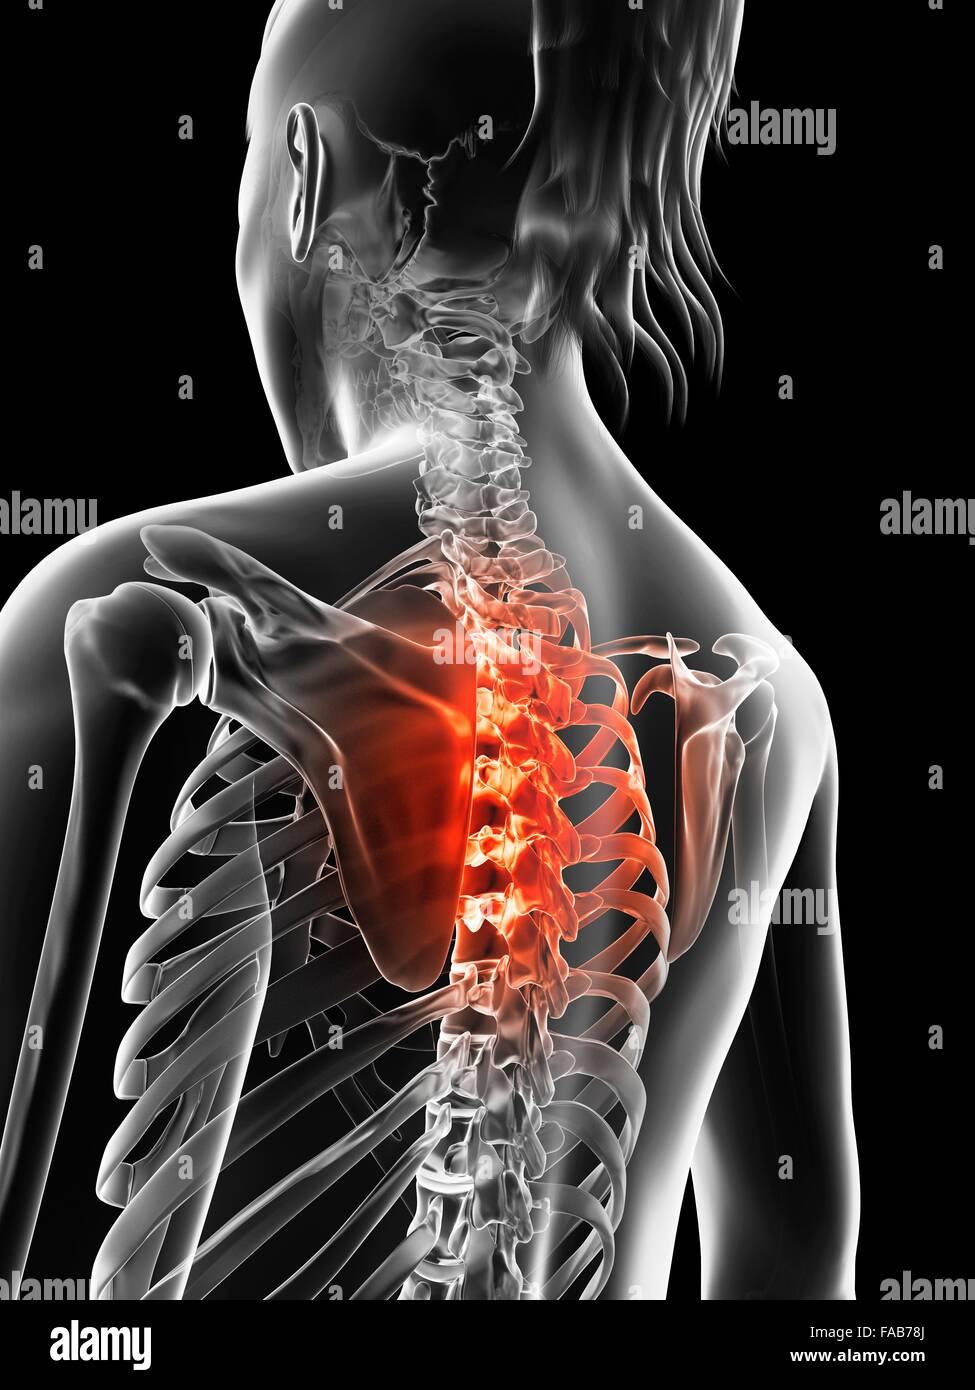 Human Thoracic Spine Pain Stock Photos Human Thoracic Spine Pain